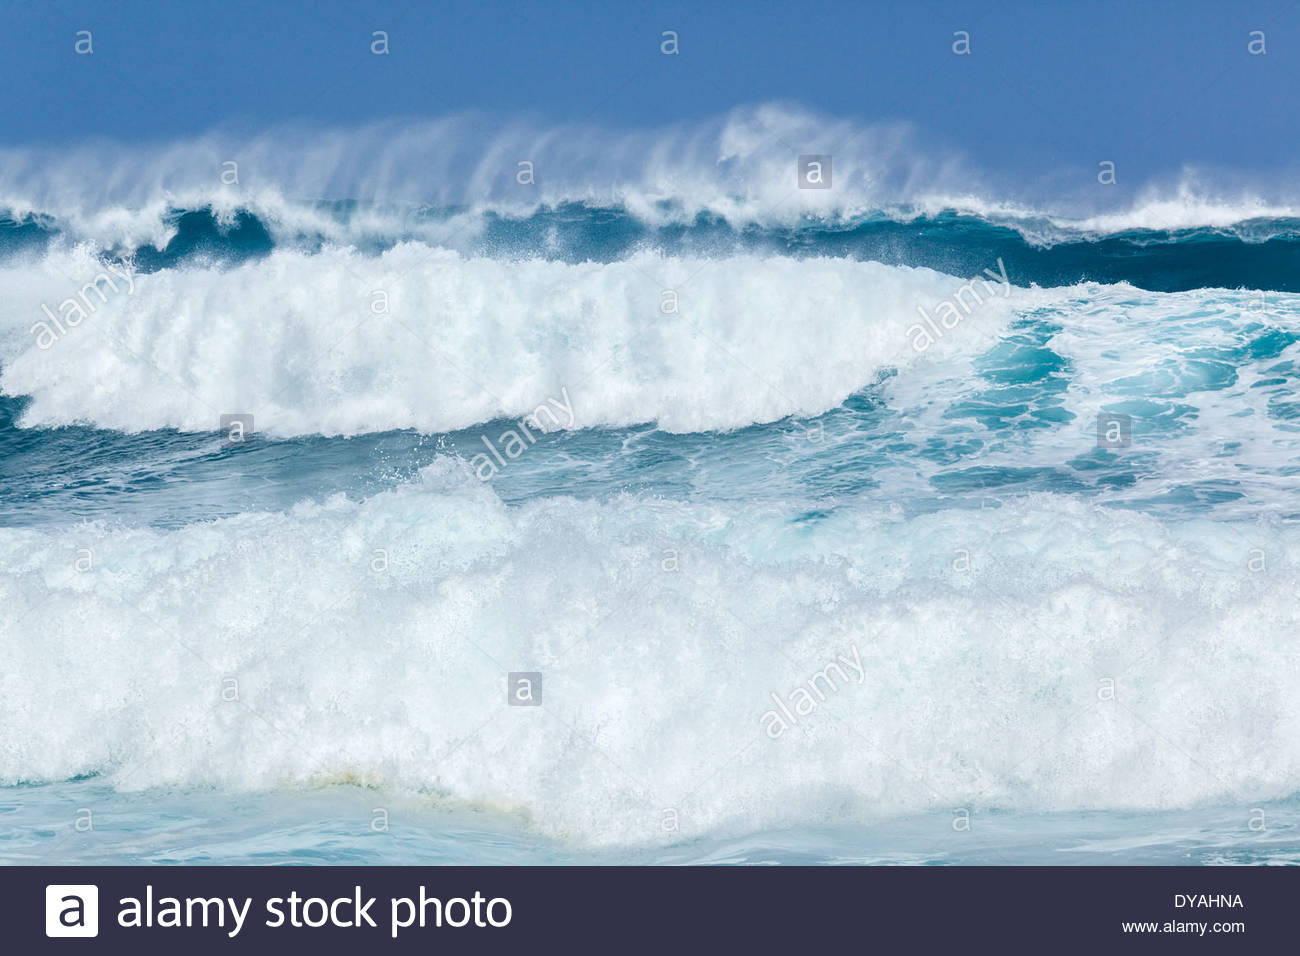 High surf crashing into Hoopika Bay on the island of Maui in the state of Hawaii USA - Stock Image